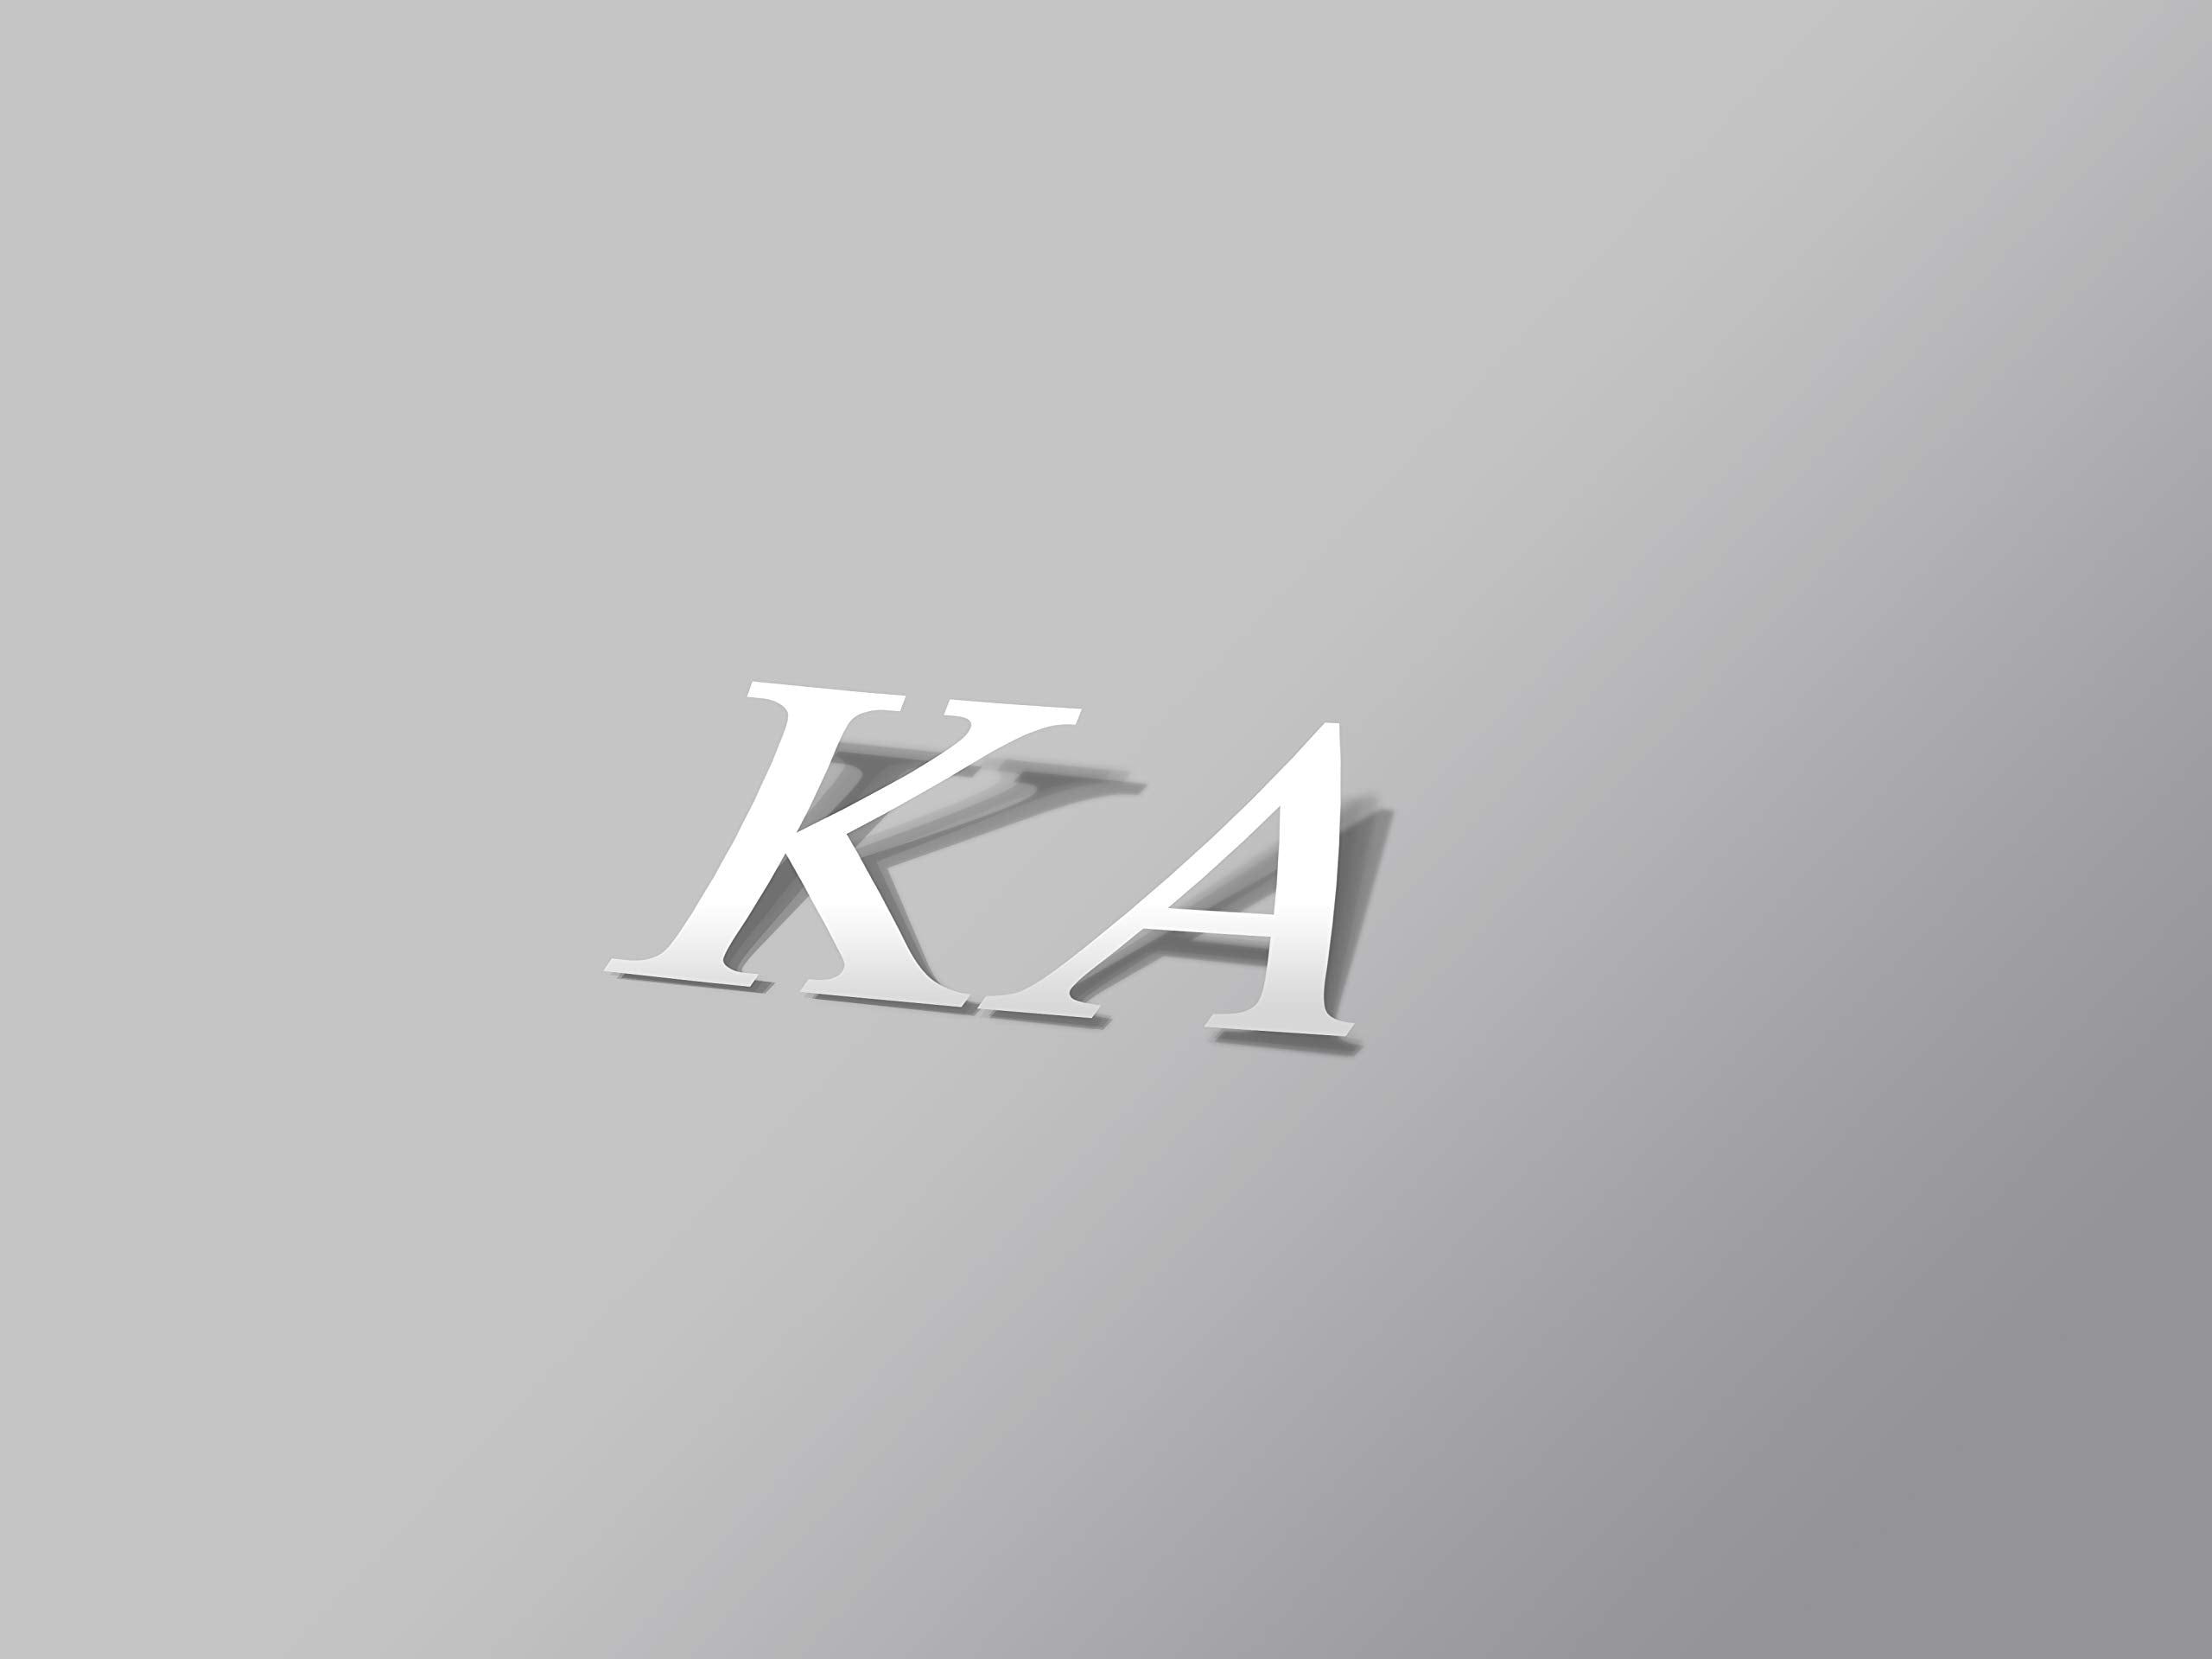 "Kappa Alpha Sticker Greek Sorority Decal for Car, Laptop, Windows, Officially Licensed Product, Monogram Design 2.5"" Tall - White"